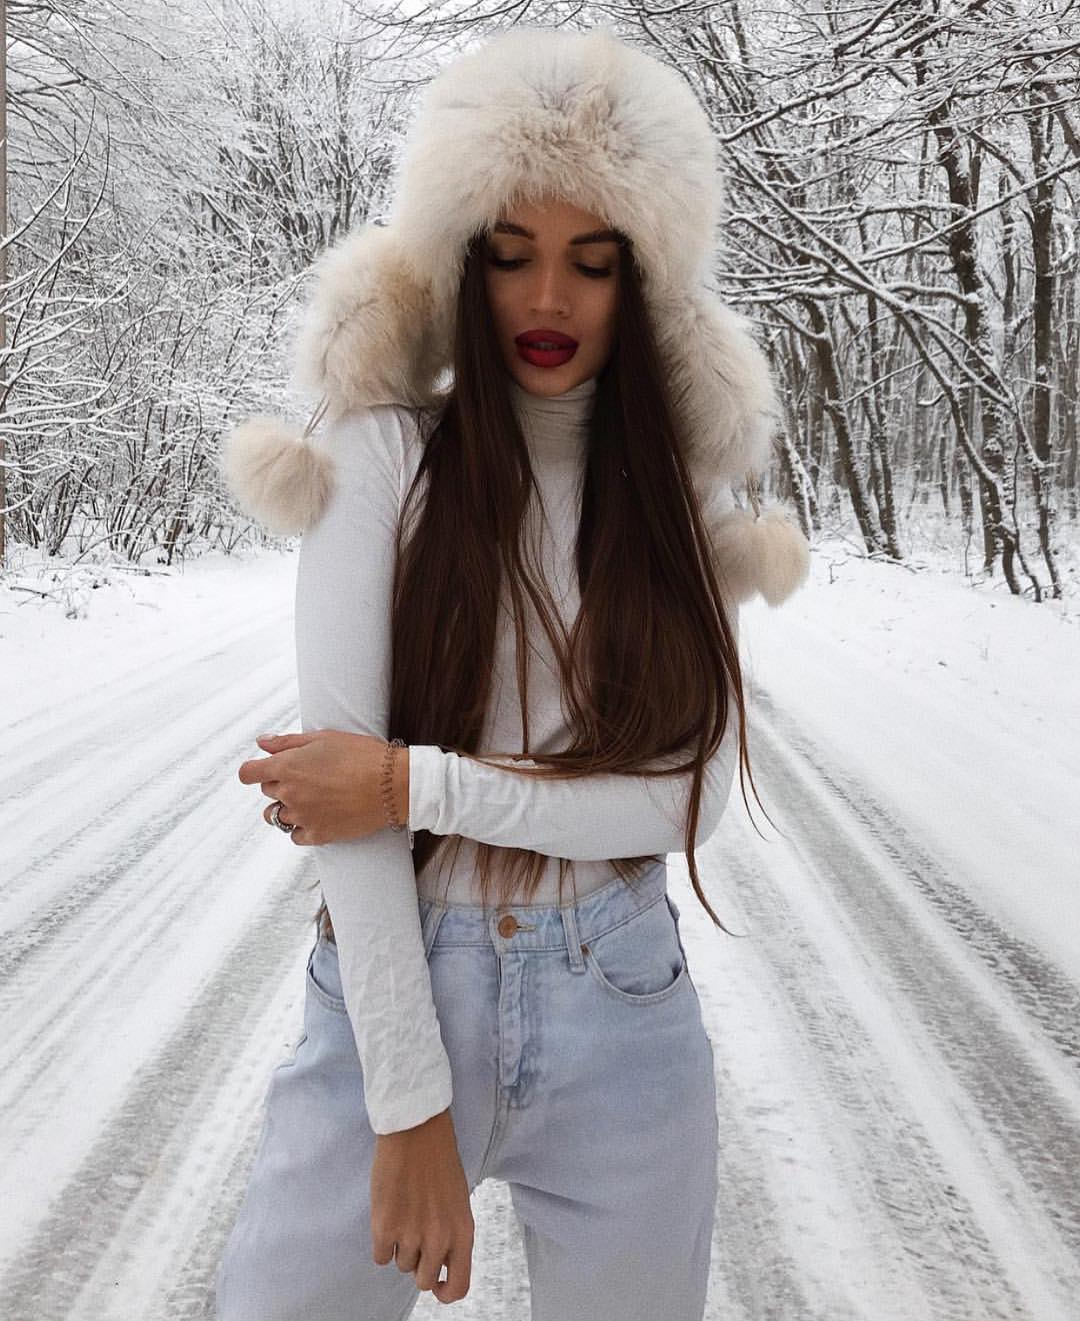 White Fur Trapper Hat For Winter 2019